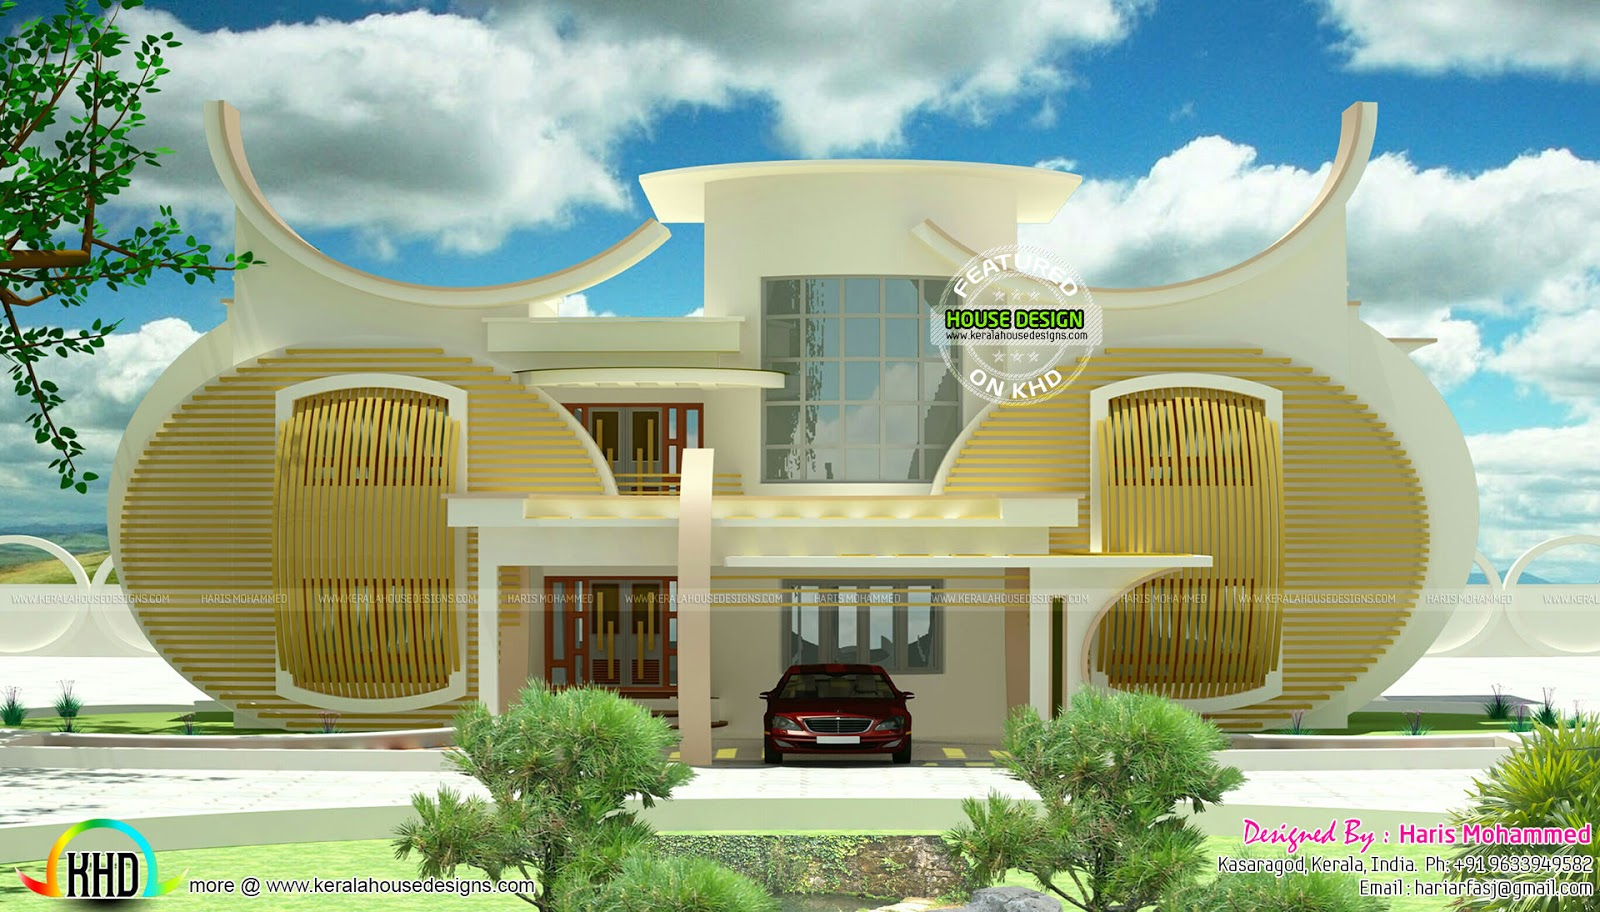 Strange circular home design kerala home design and for Home design photo